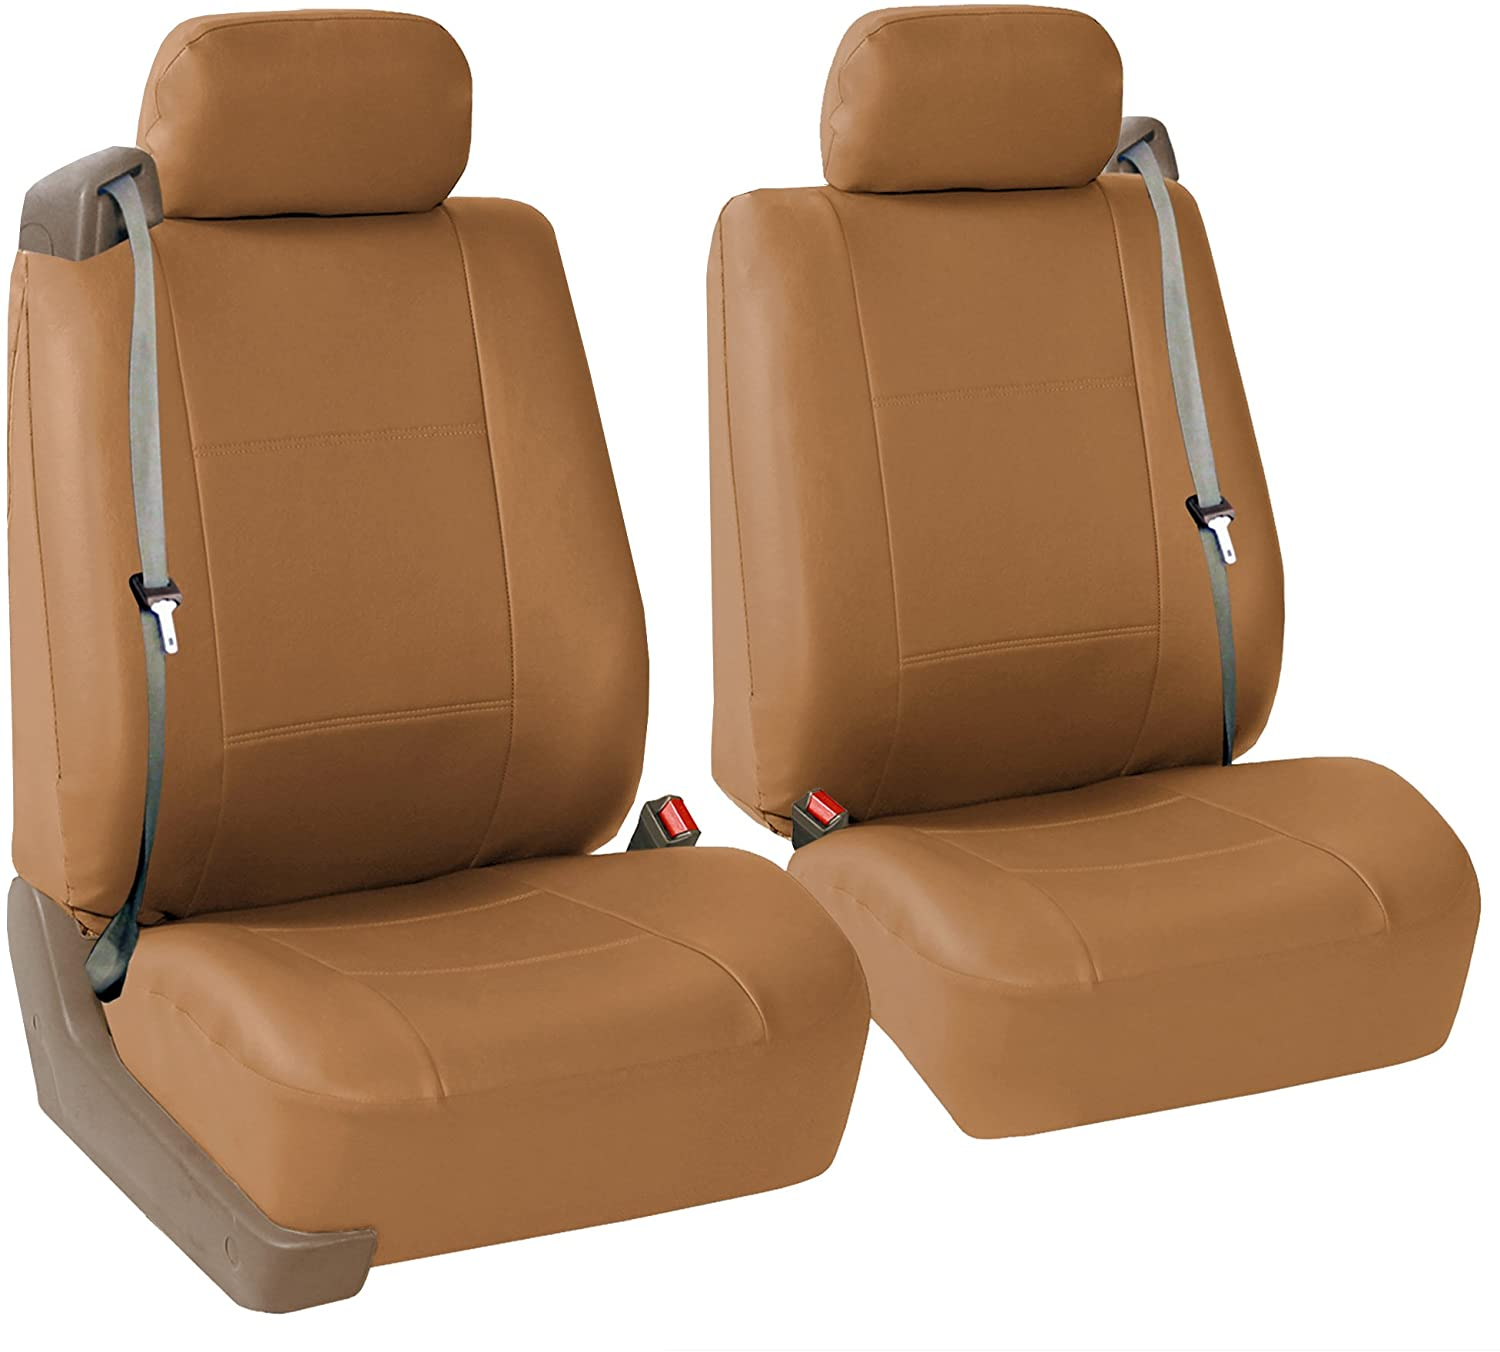 FH Group PU309102 All-Purpose Built-in Seat Belt PU Leather Seat Covers (Tan) Front Set – Universal Fit for Cars Trucks & SUVs